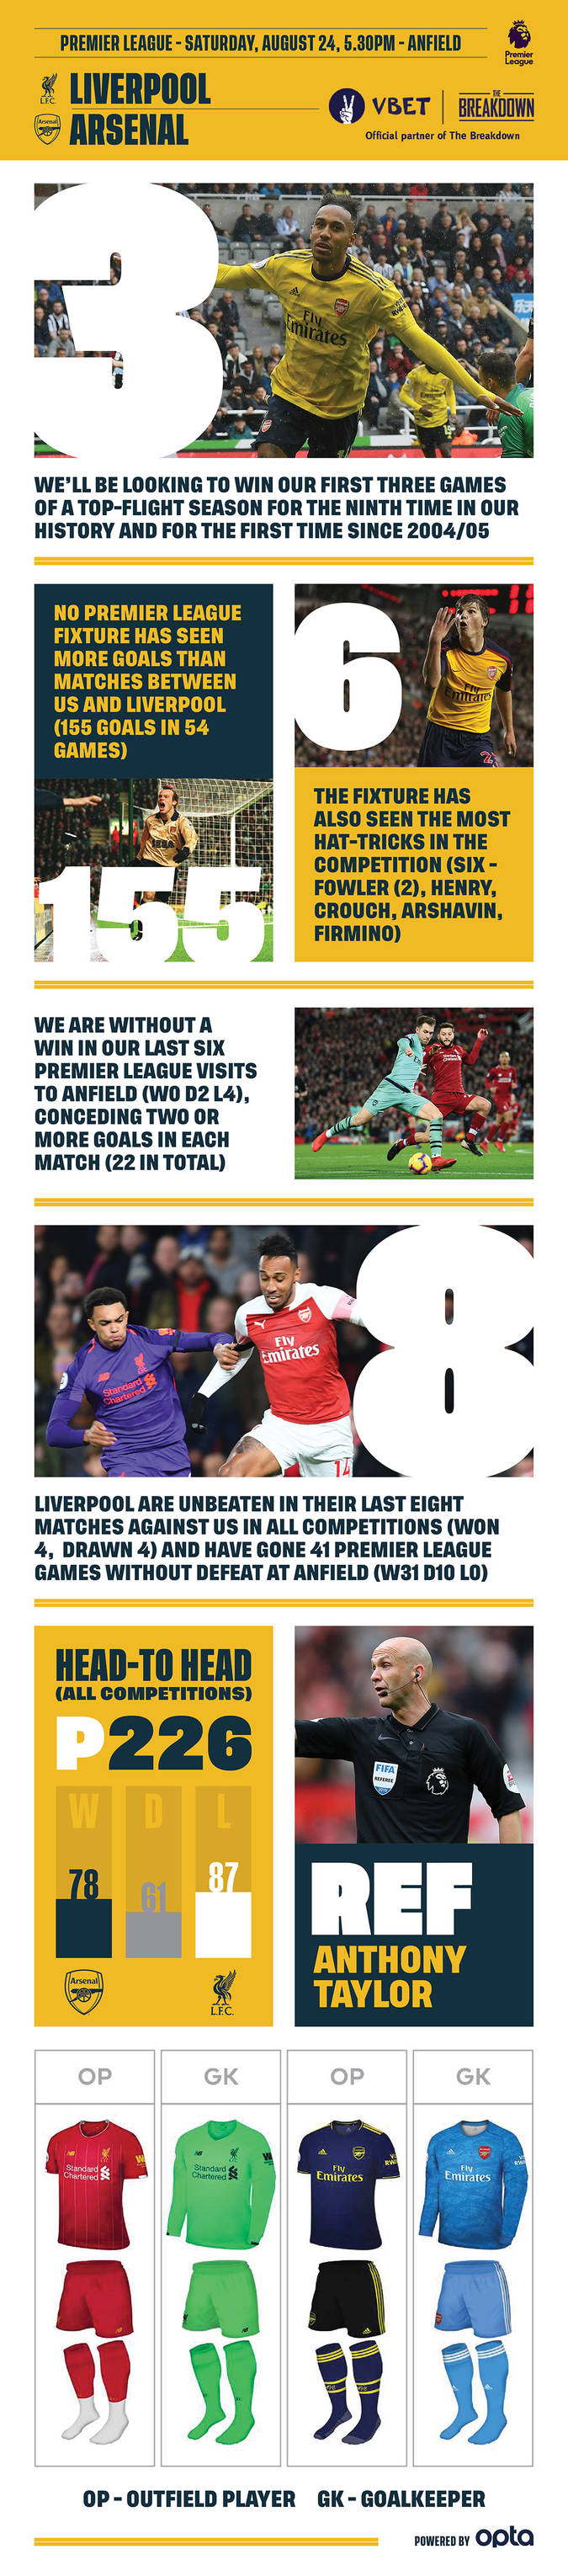 Liverpool v Arsenal preview: goals, stats and more   Pre